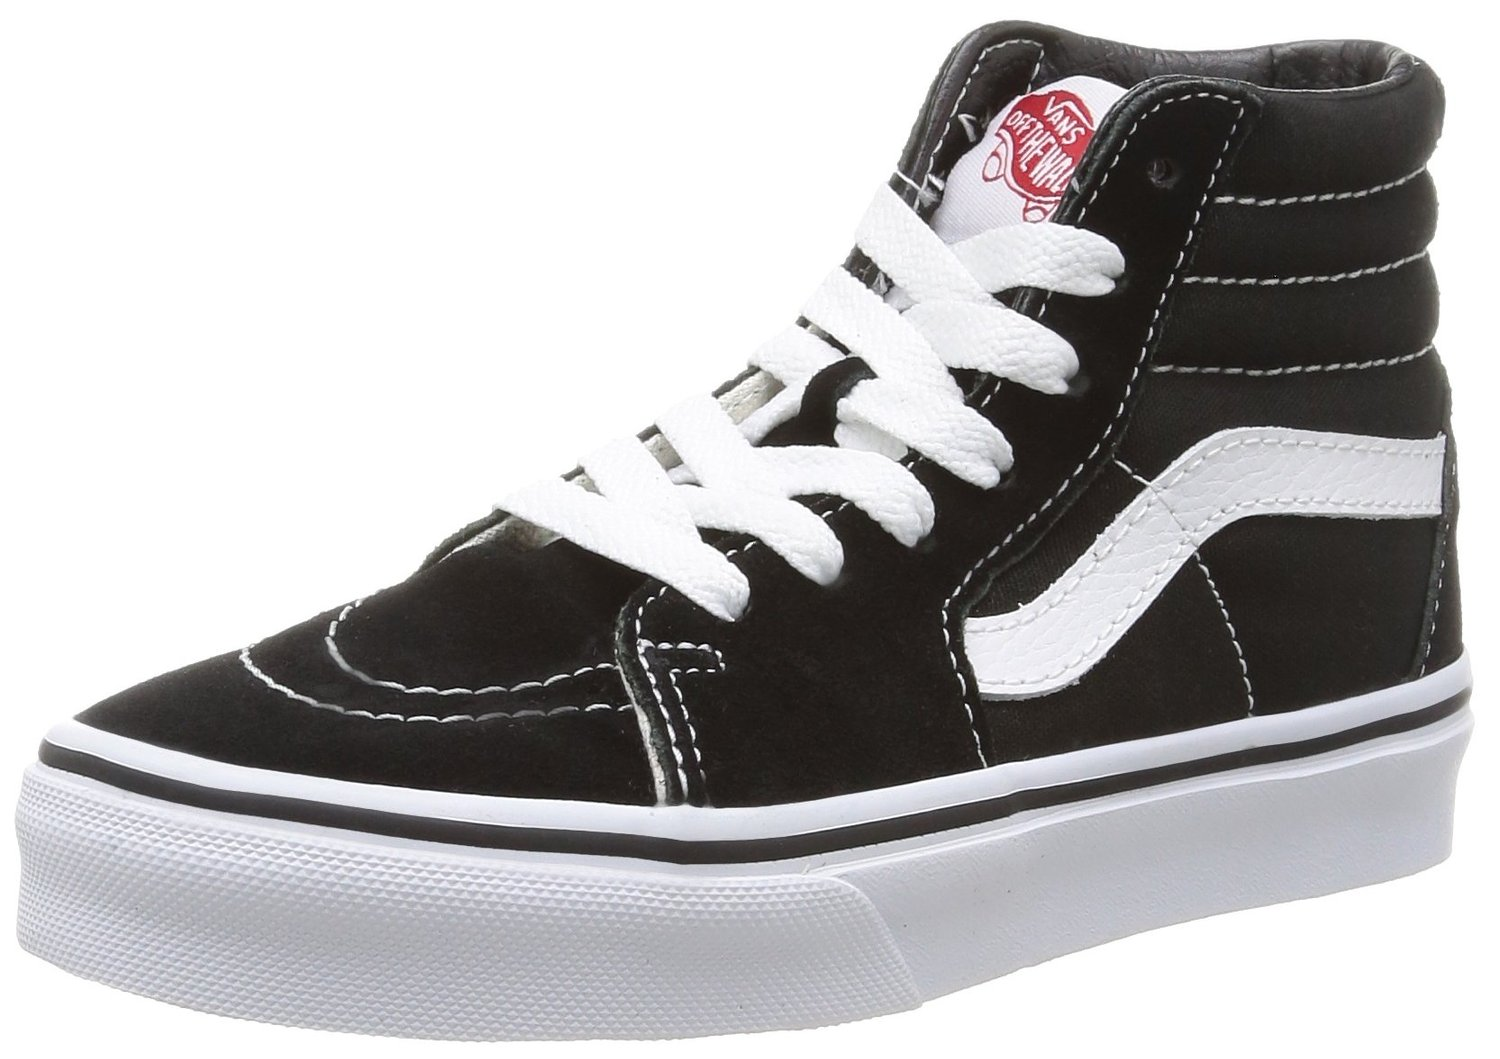 ac81b1b1fdebb7 Get Quotations · Vans Kid Shoes SK8-Hi Black White Sneakers